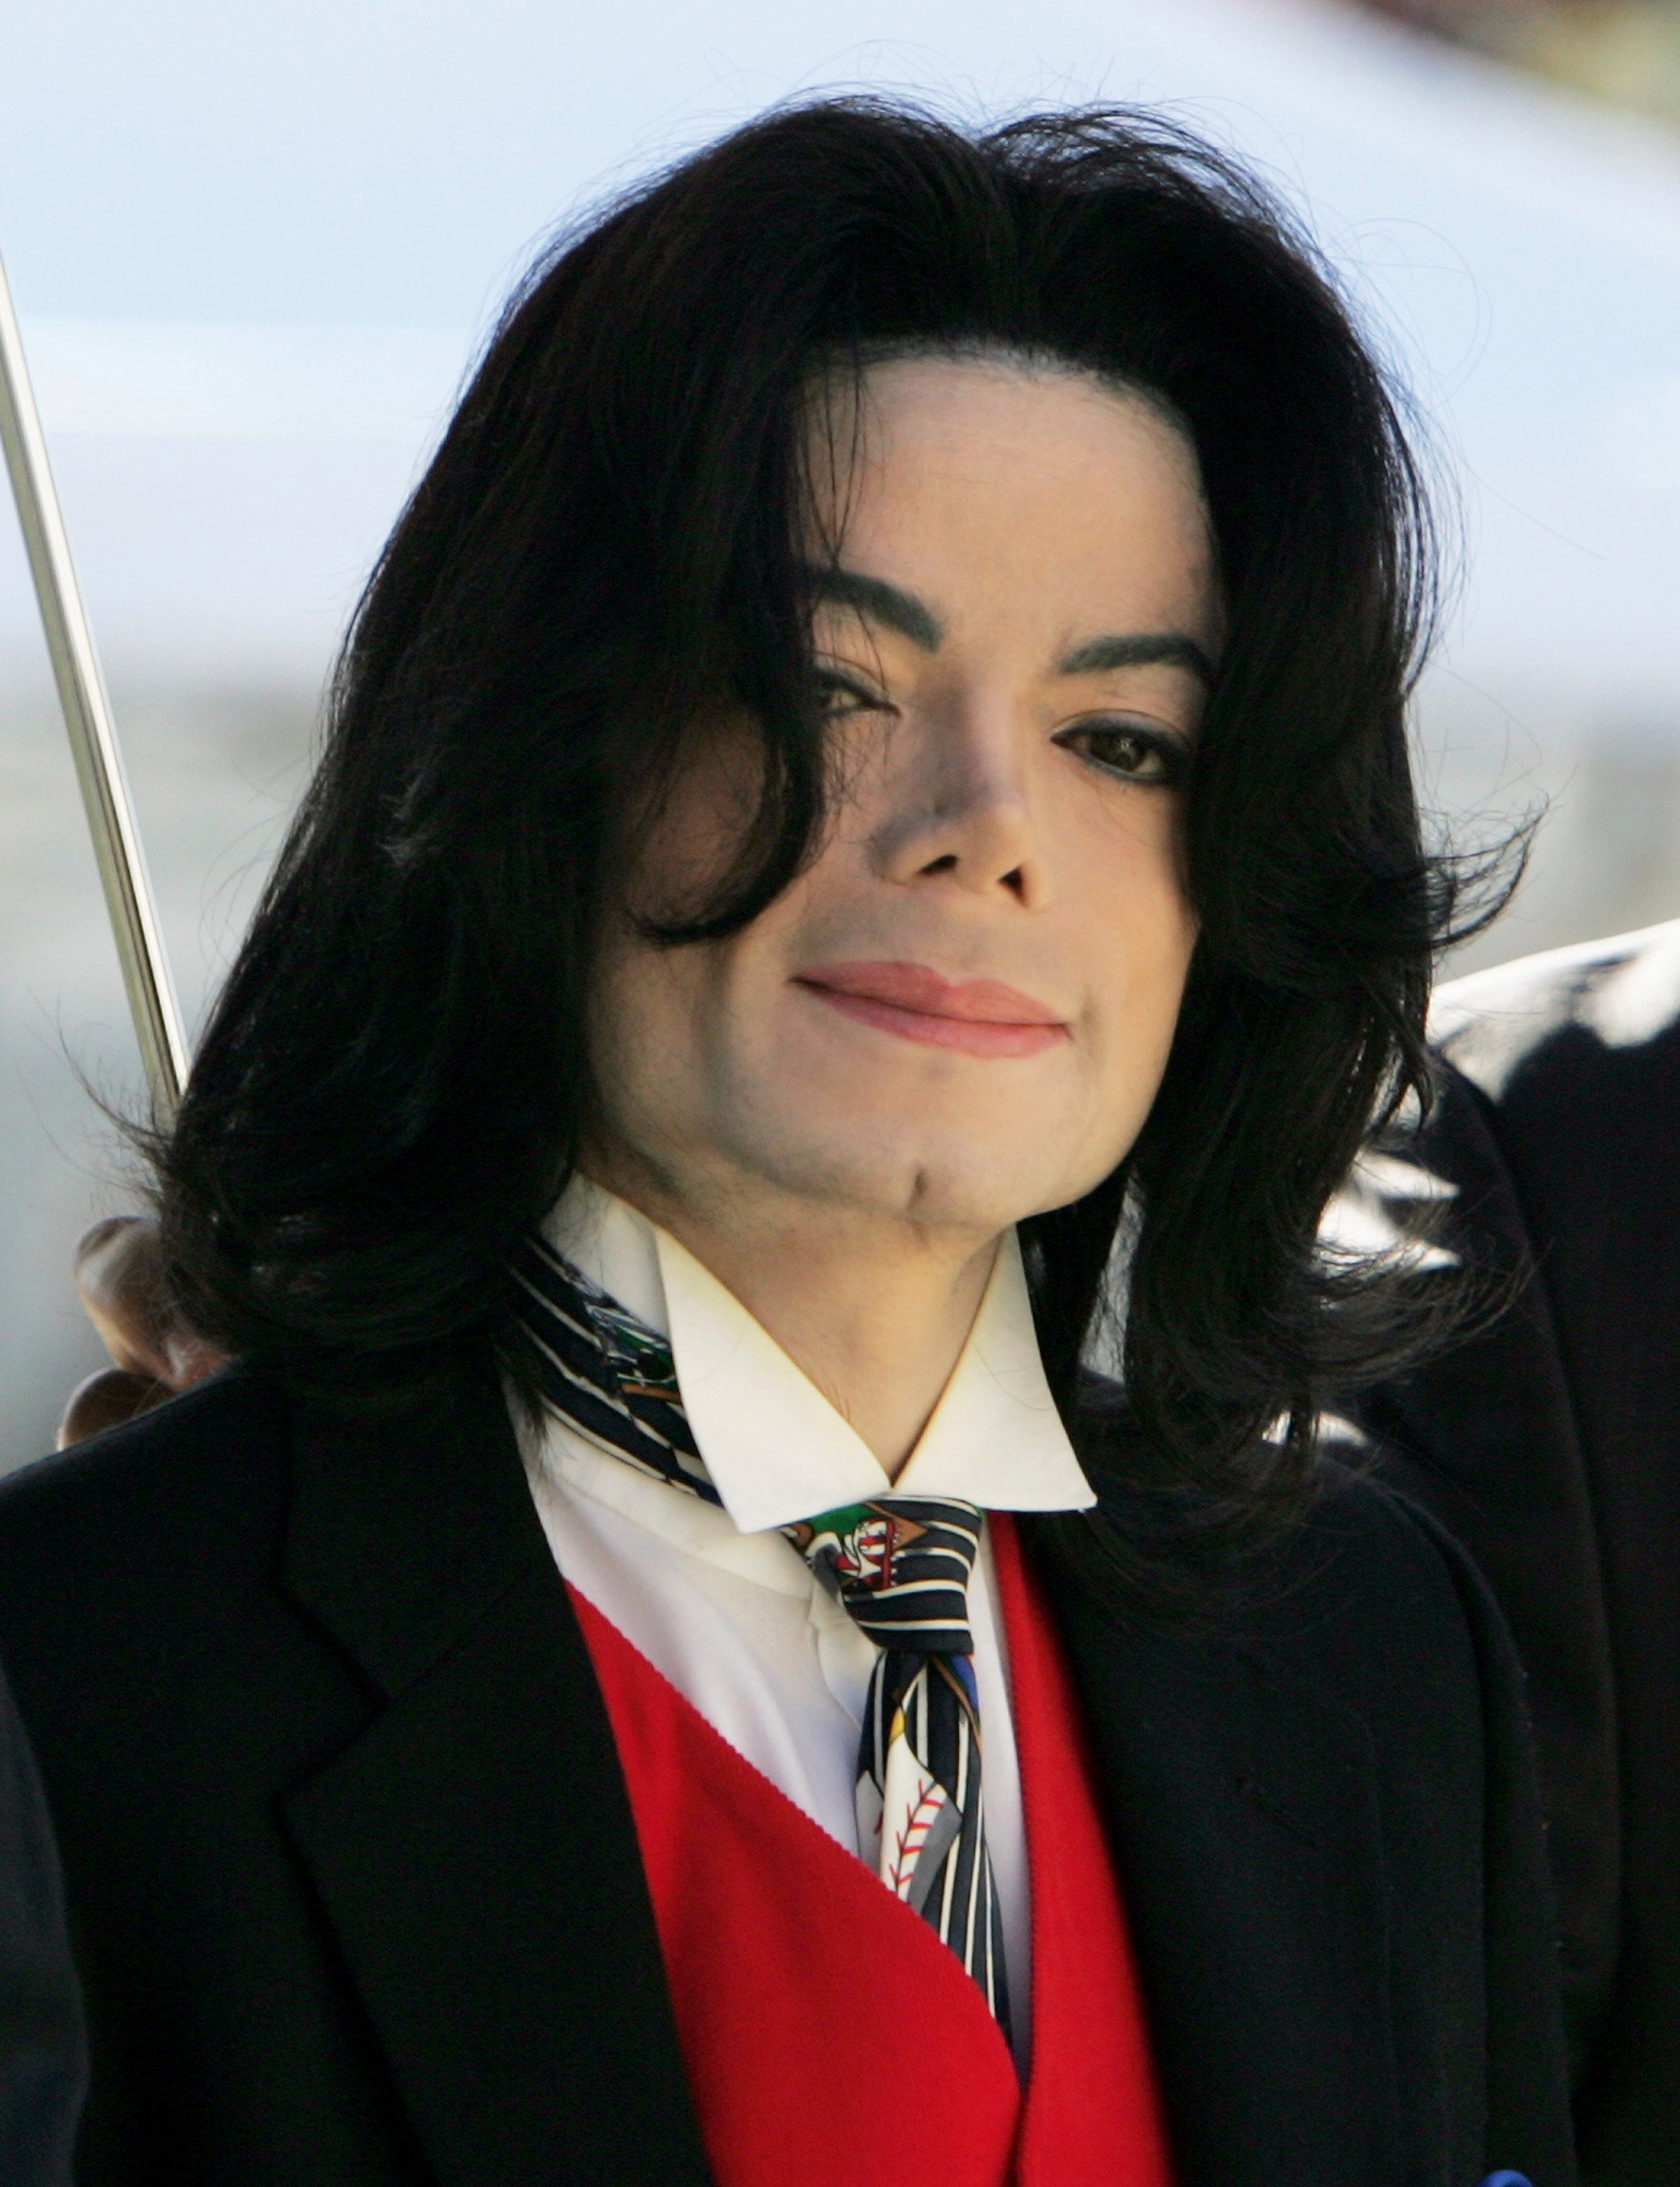 Michael Jackson, late singer | Photo: Getty Images